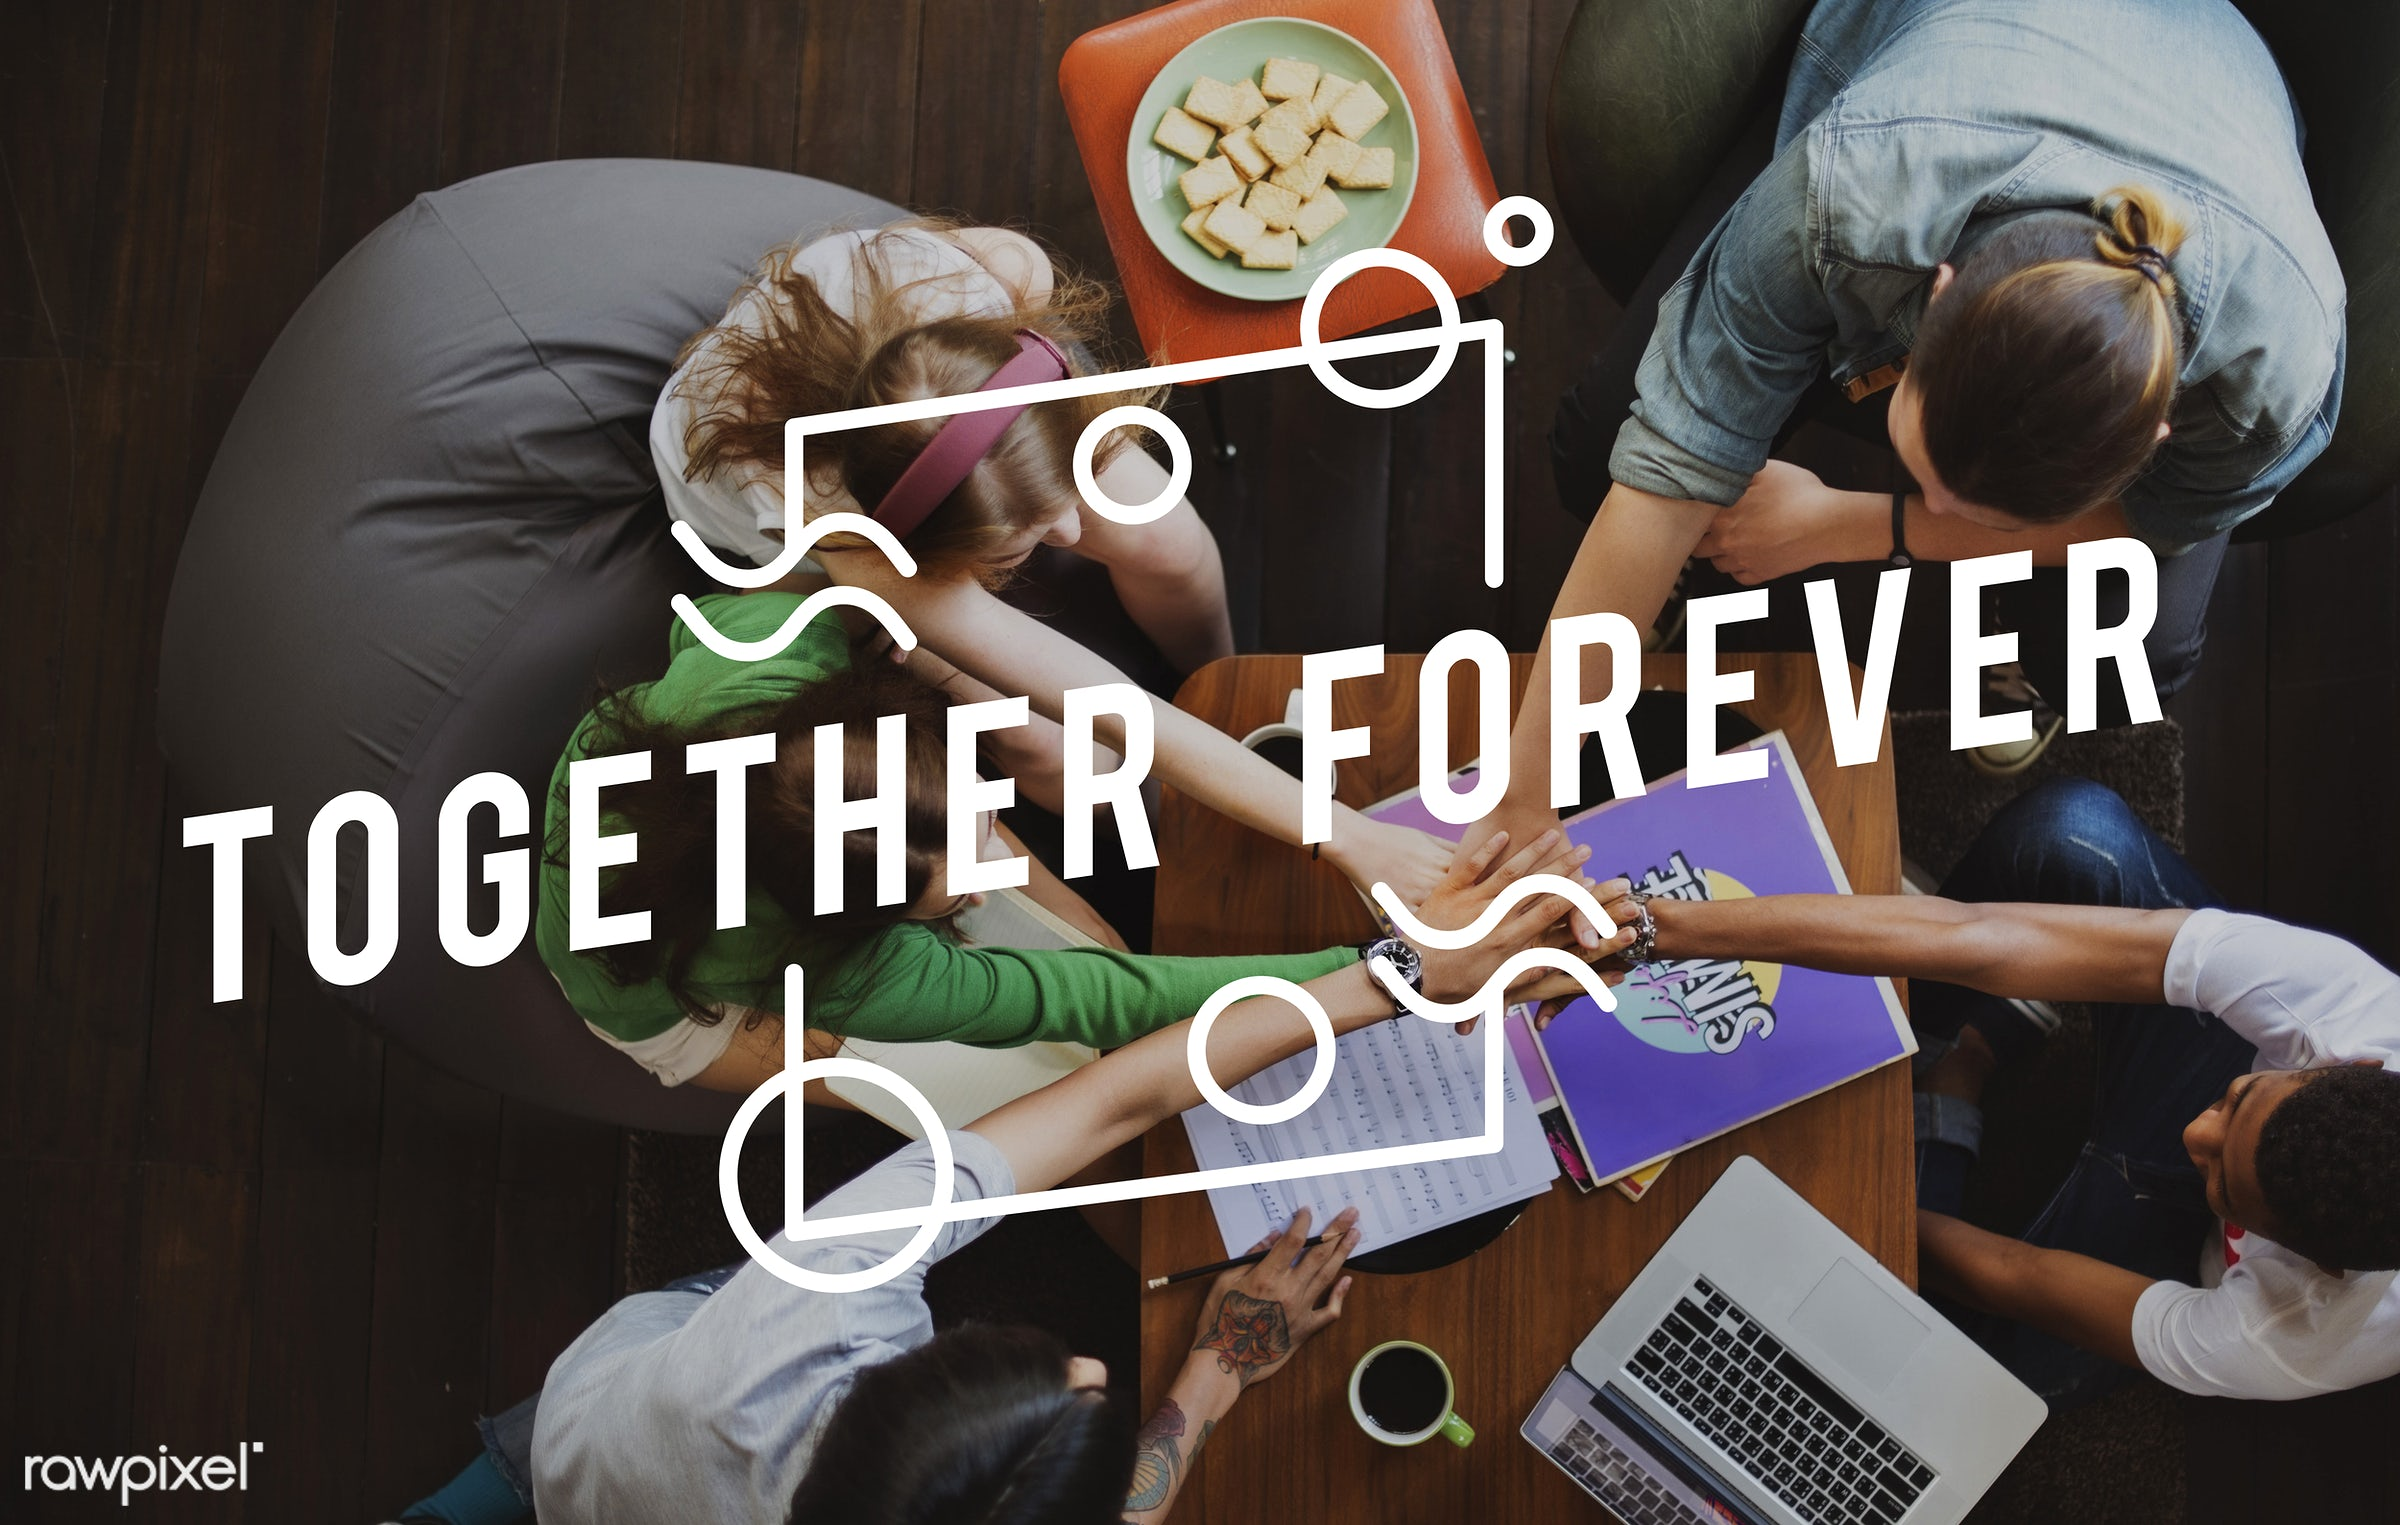 agreement, african descent, alliance, asian, better together, bond, caucasian, coalition, collaborate, combined, connection...